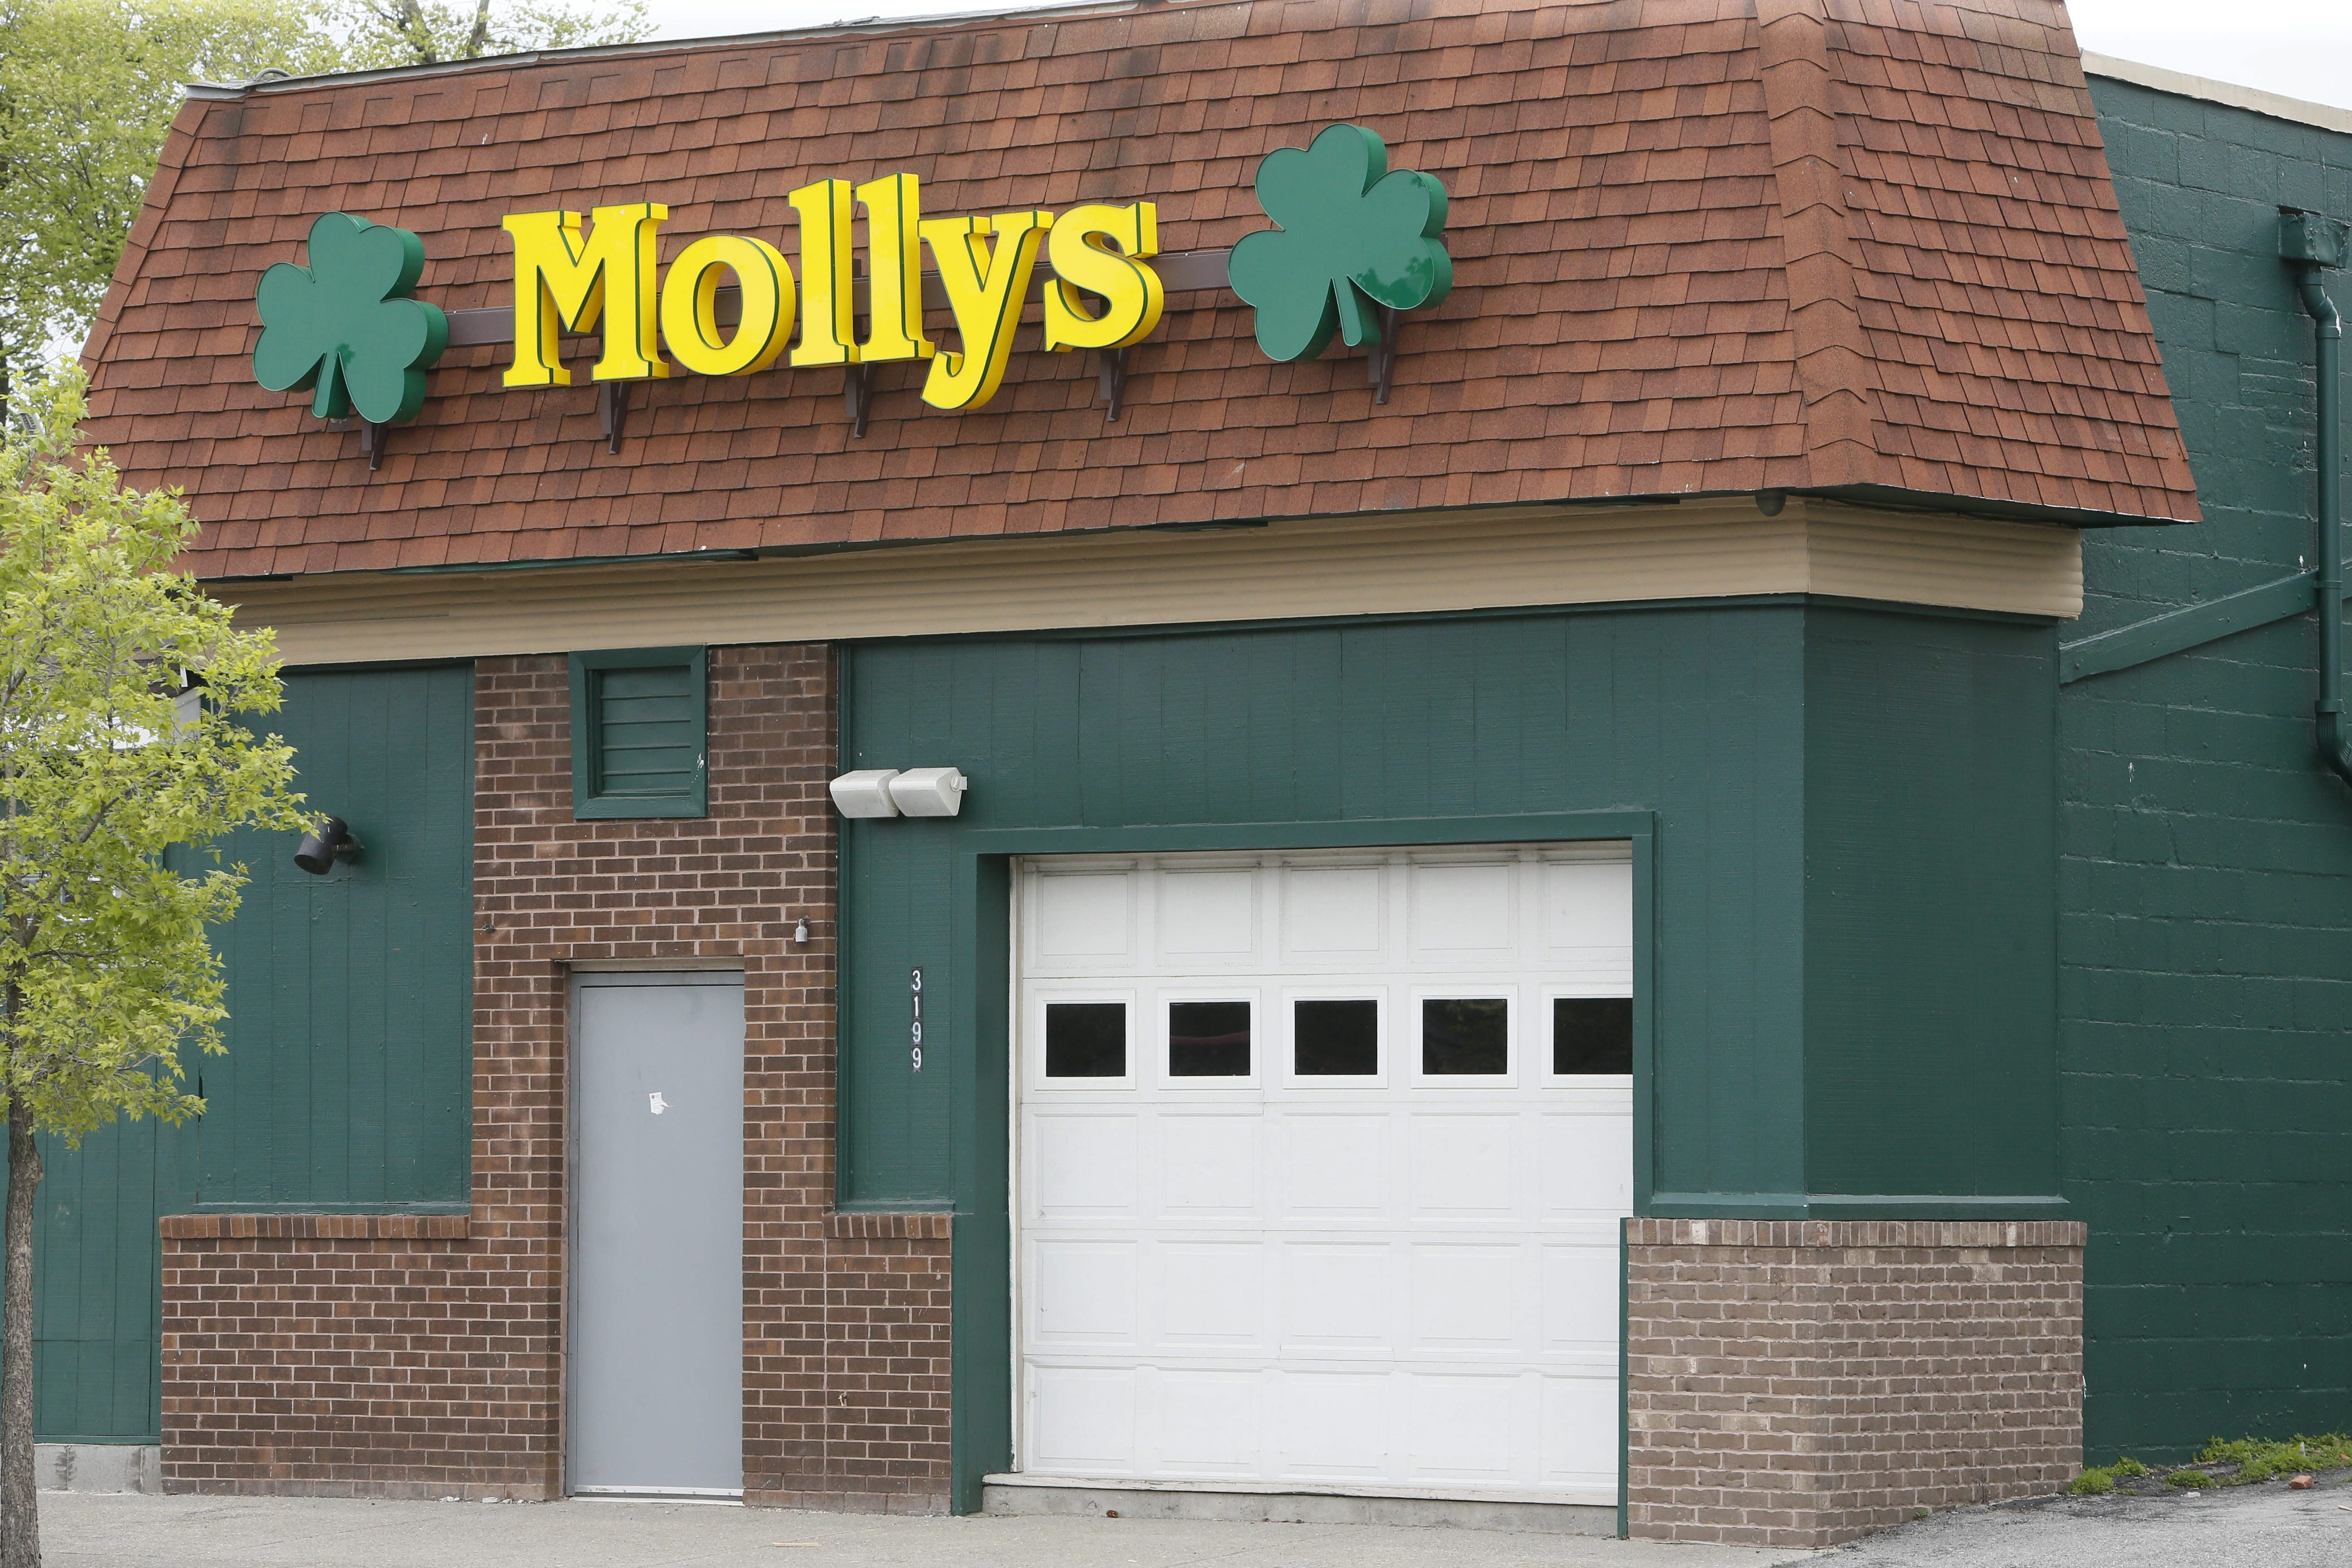 Molly's on Main Street, where Air National Guardsman William C. Sager Jr. was pushed down a flight of stairs May 11. He died July 31.